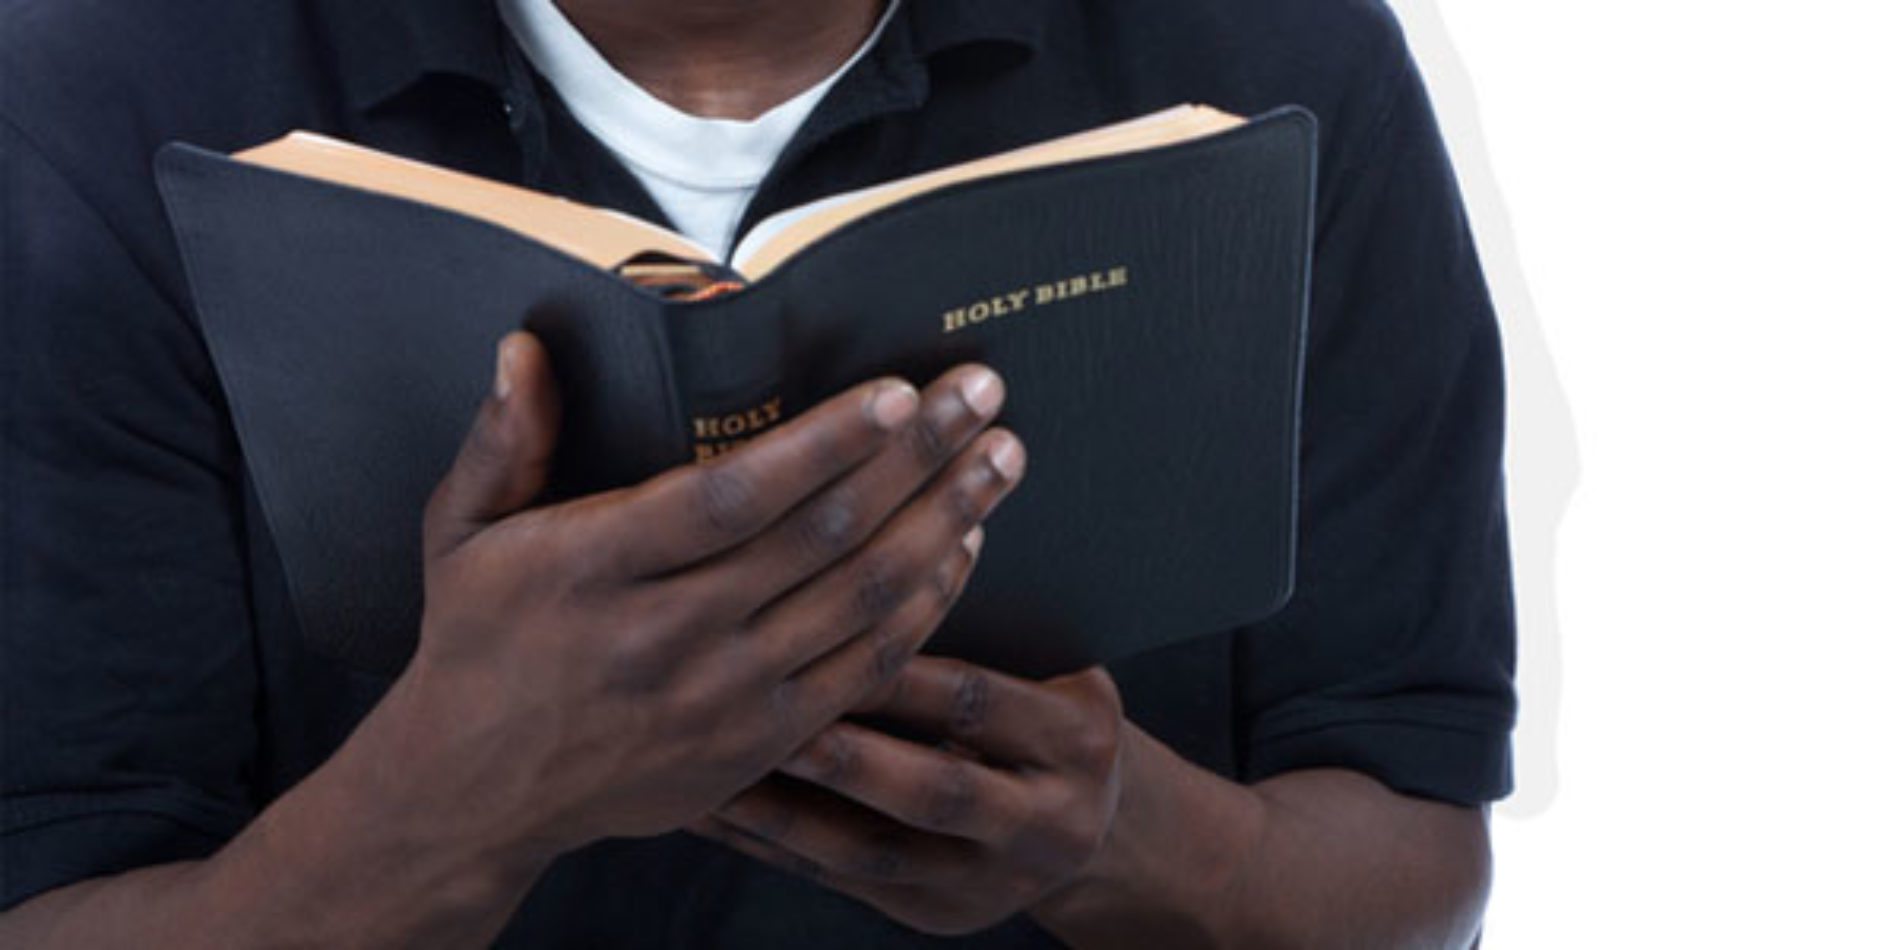 IN DIALOGUE WITH THE SCRIPTURE